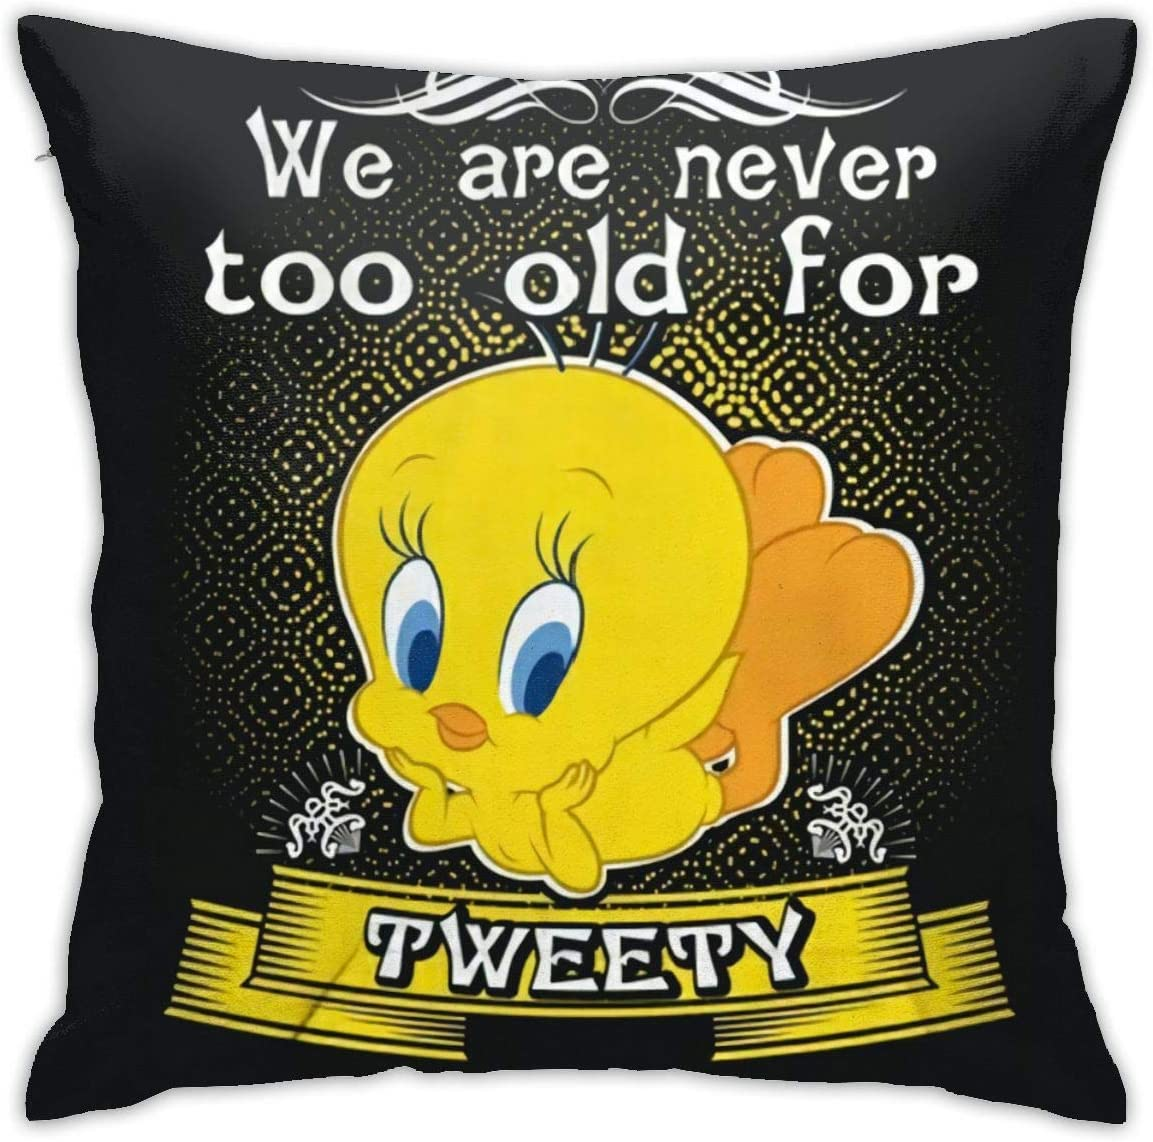 Looney Tunes Tweety Decorative Reading Pillow Covers Case Pillowcases 18x18 in